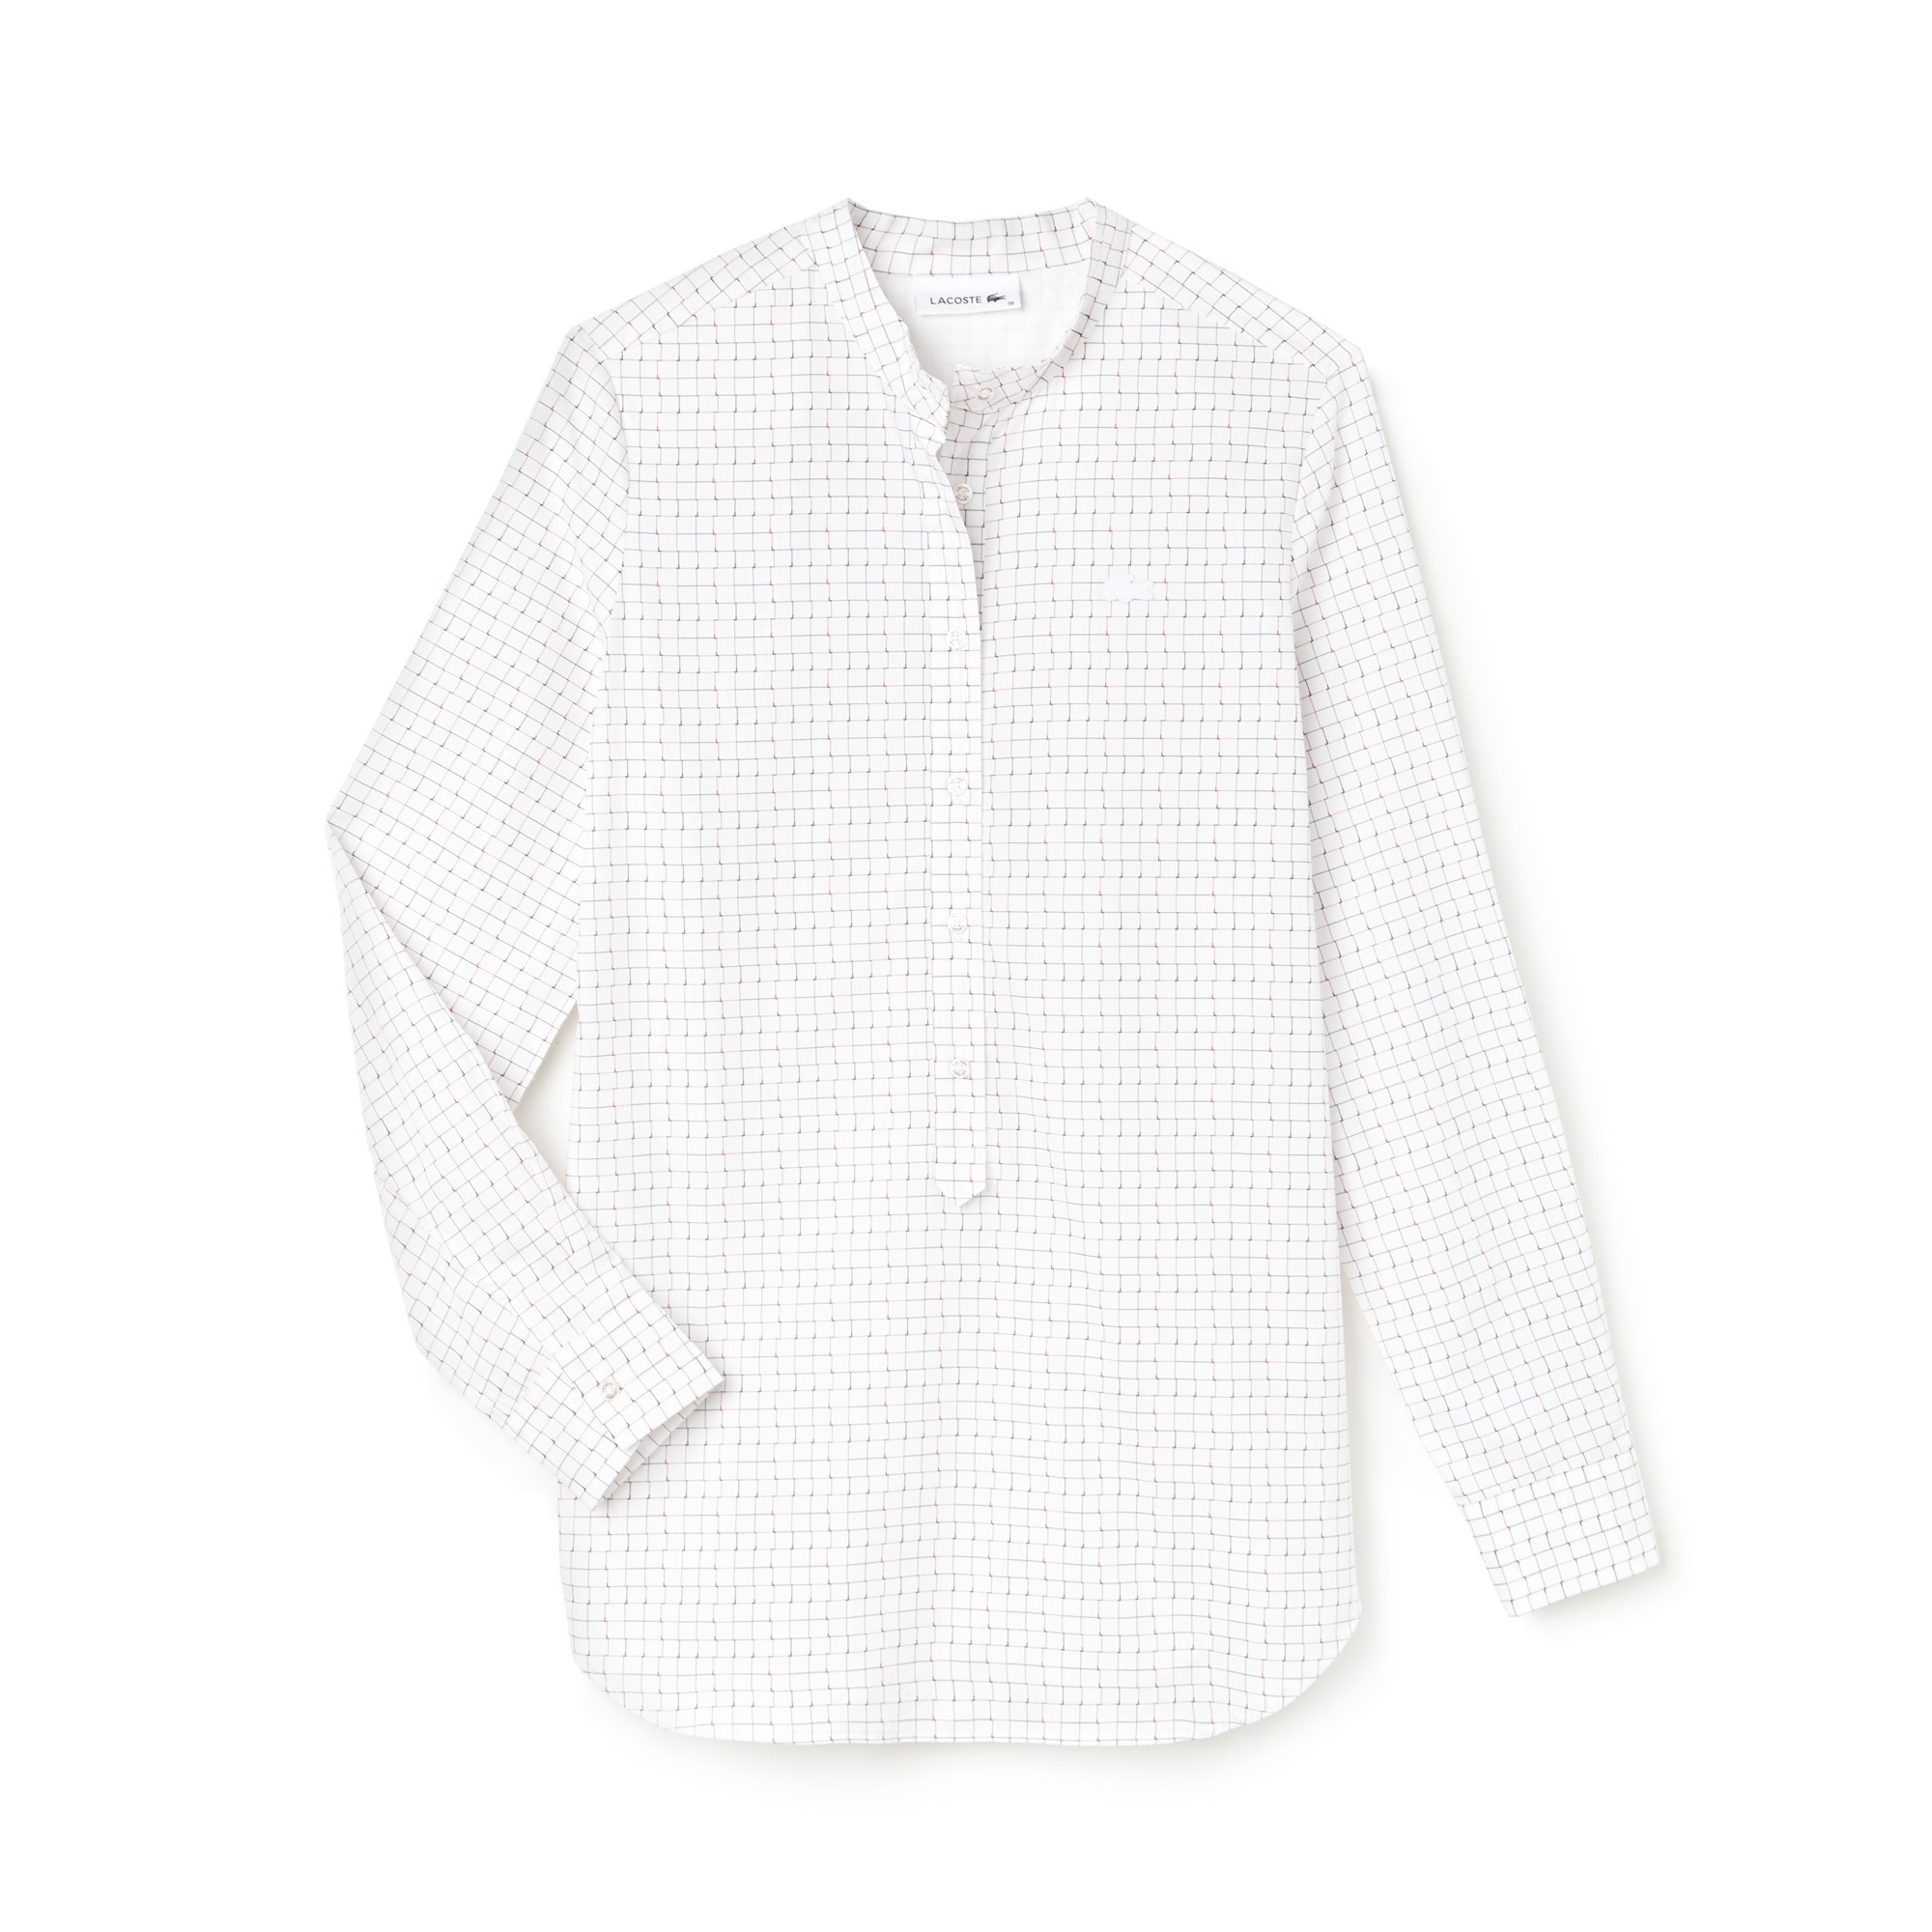 Women's Regular Fit Print Cotton Poplin Shirt